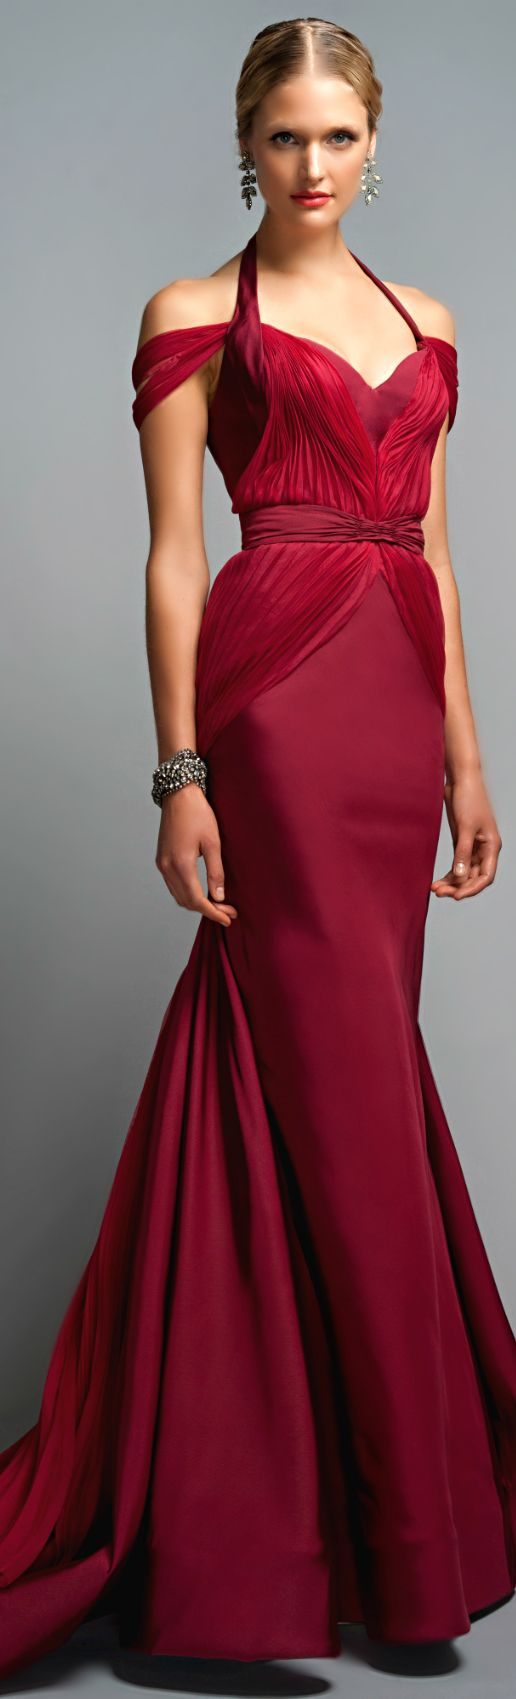 Zac posen halter evening gown dresses pinterest beautiful